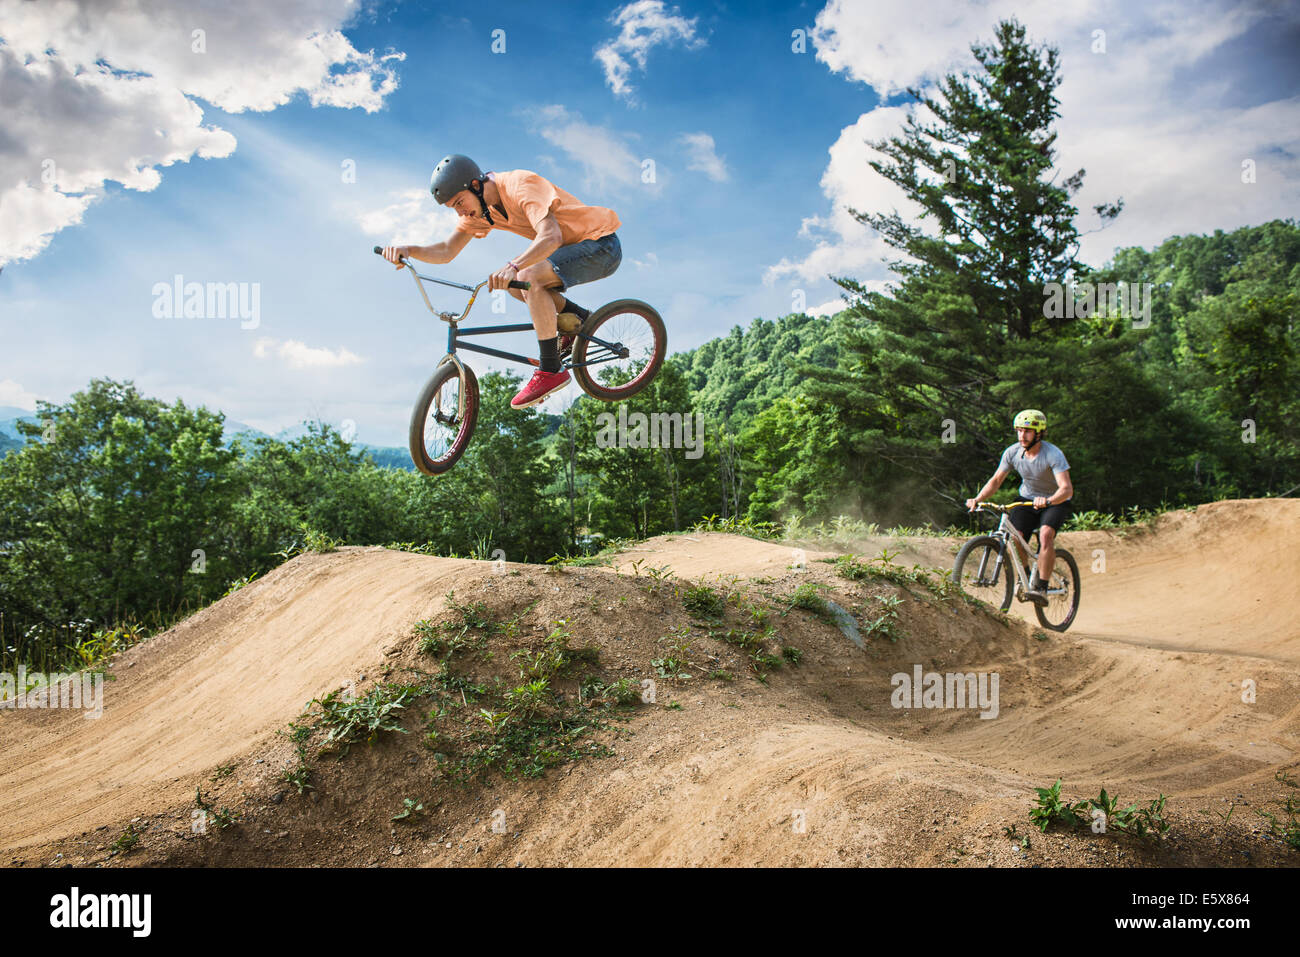 Two male friends riding BMX and mountain bikes on rural pump track - Stock Image